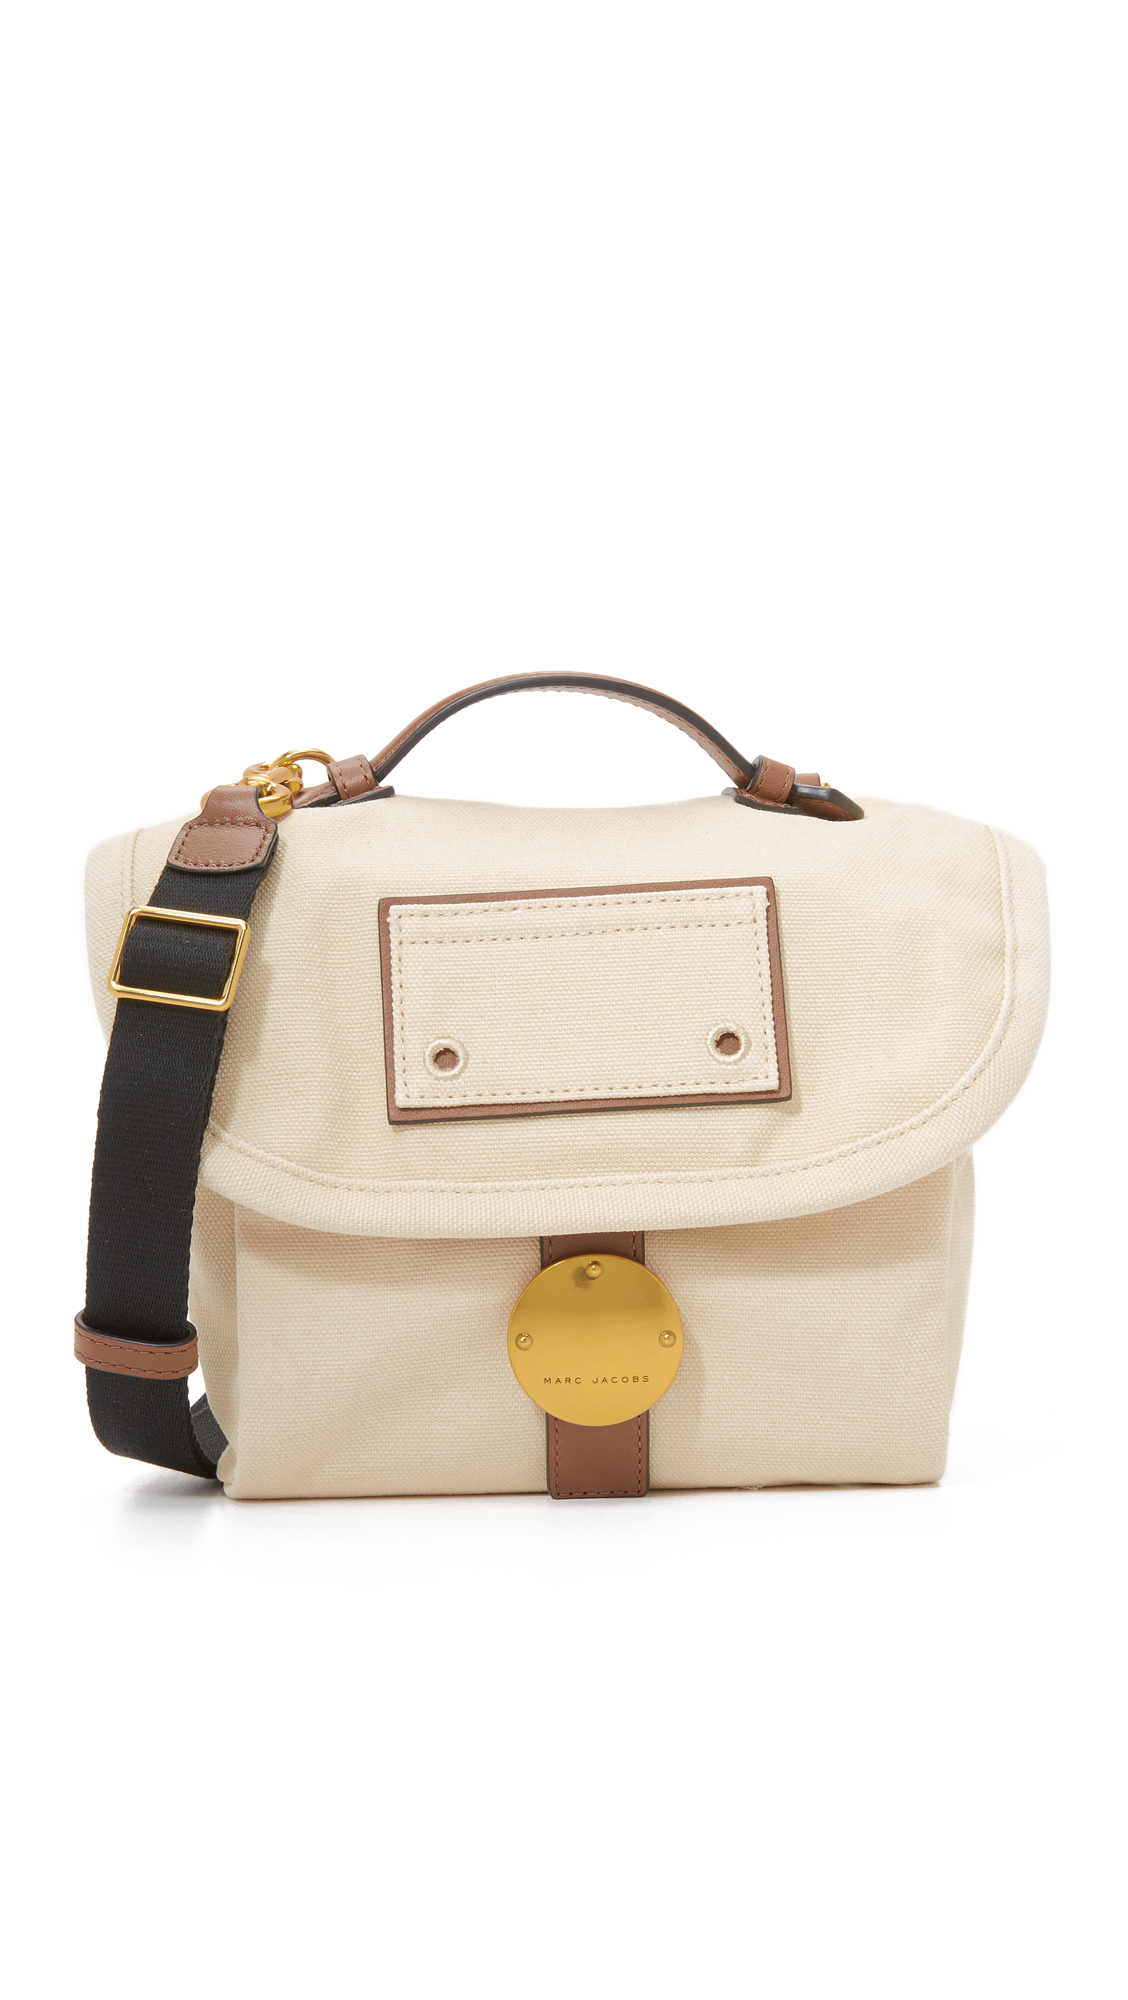 Marc Jacobs Multicolor leather shoulder bag aYj0YRS